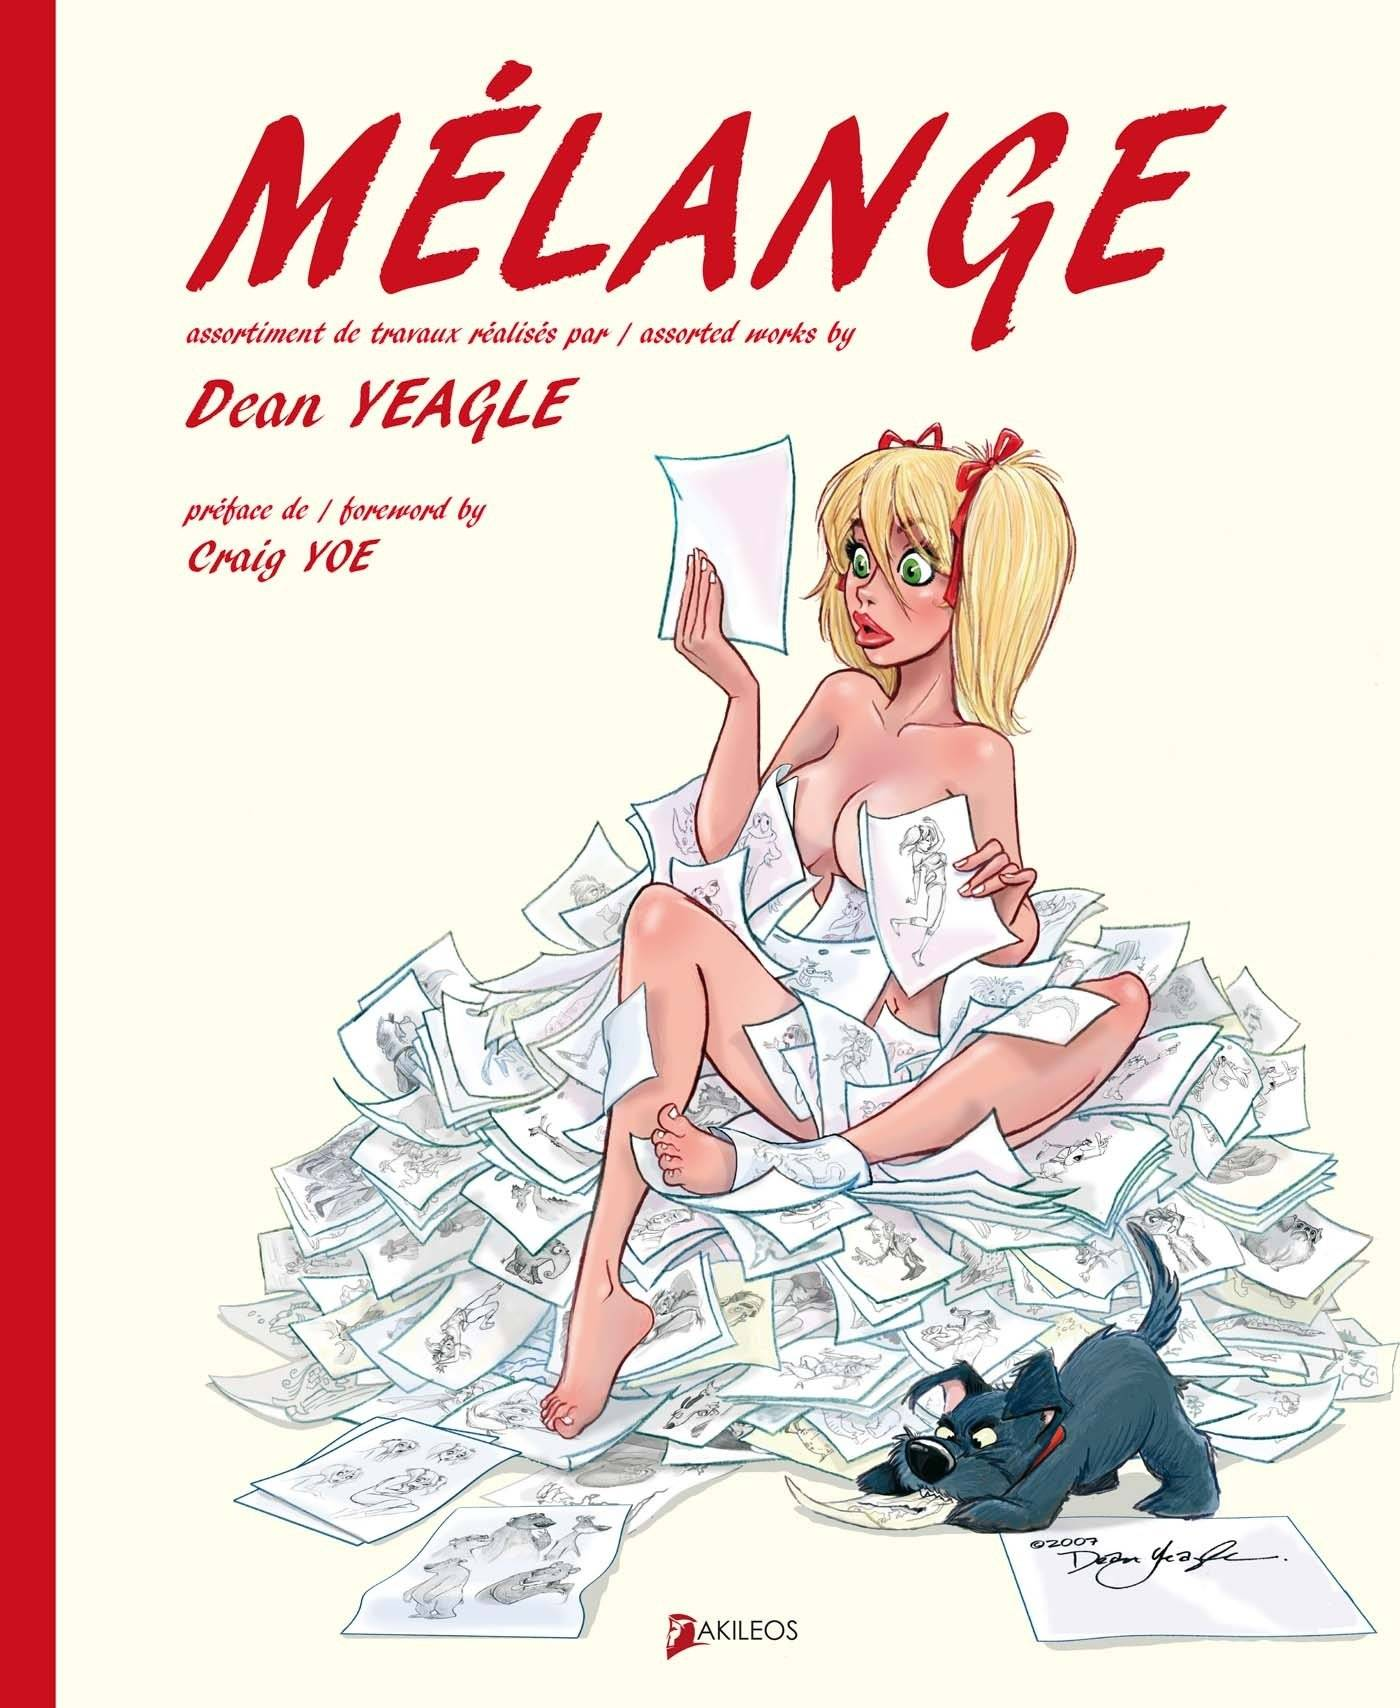 Mélange by Dean Yeagle